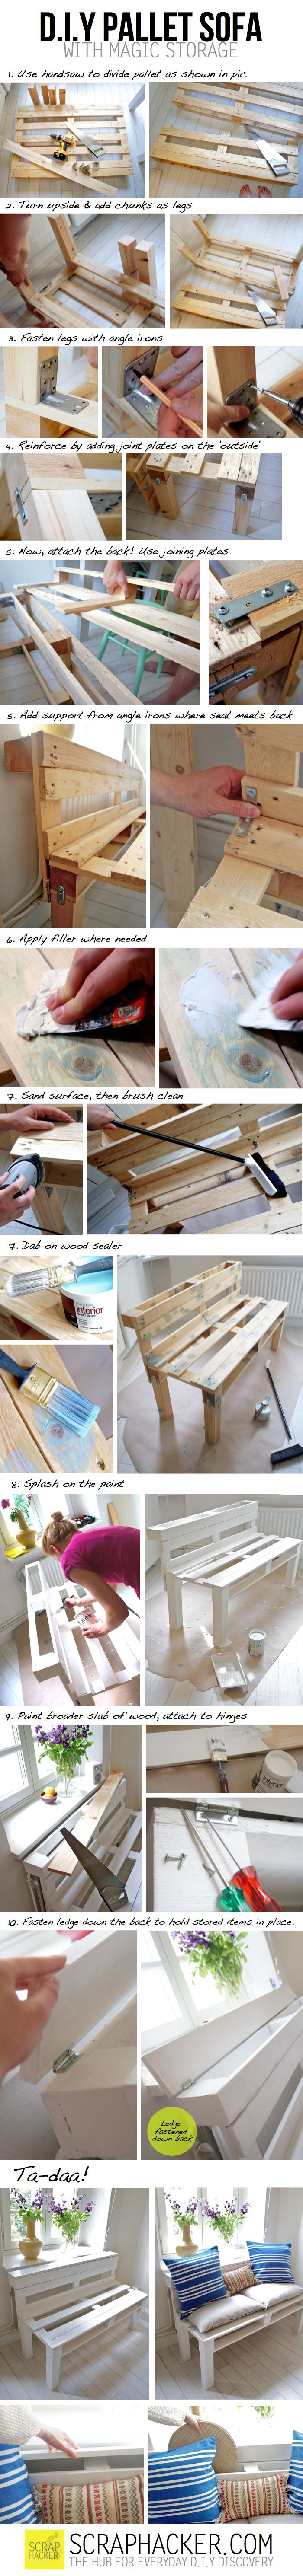 diy pallet sofa tutorial easy 10 step diy guide what a